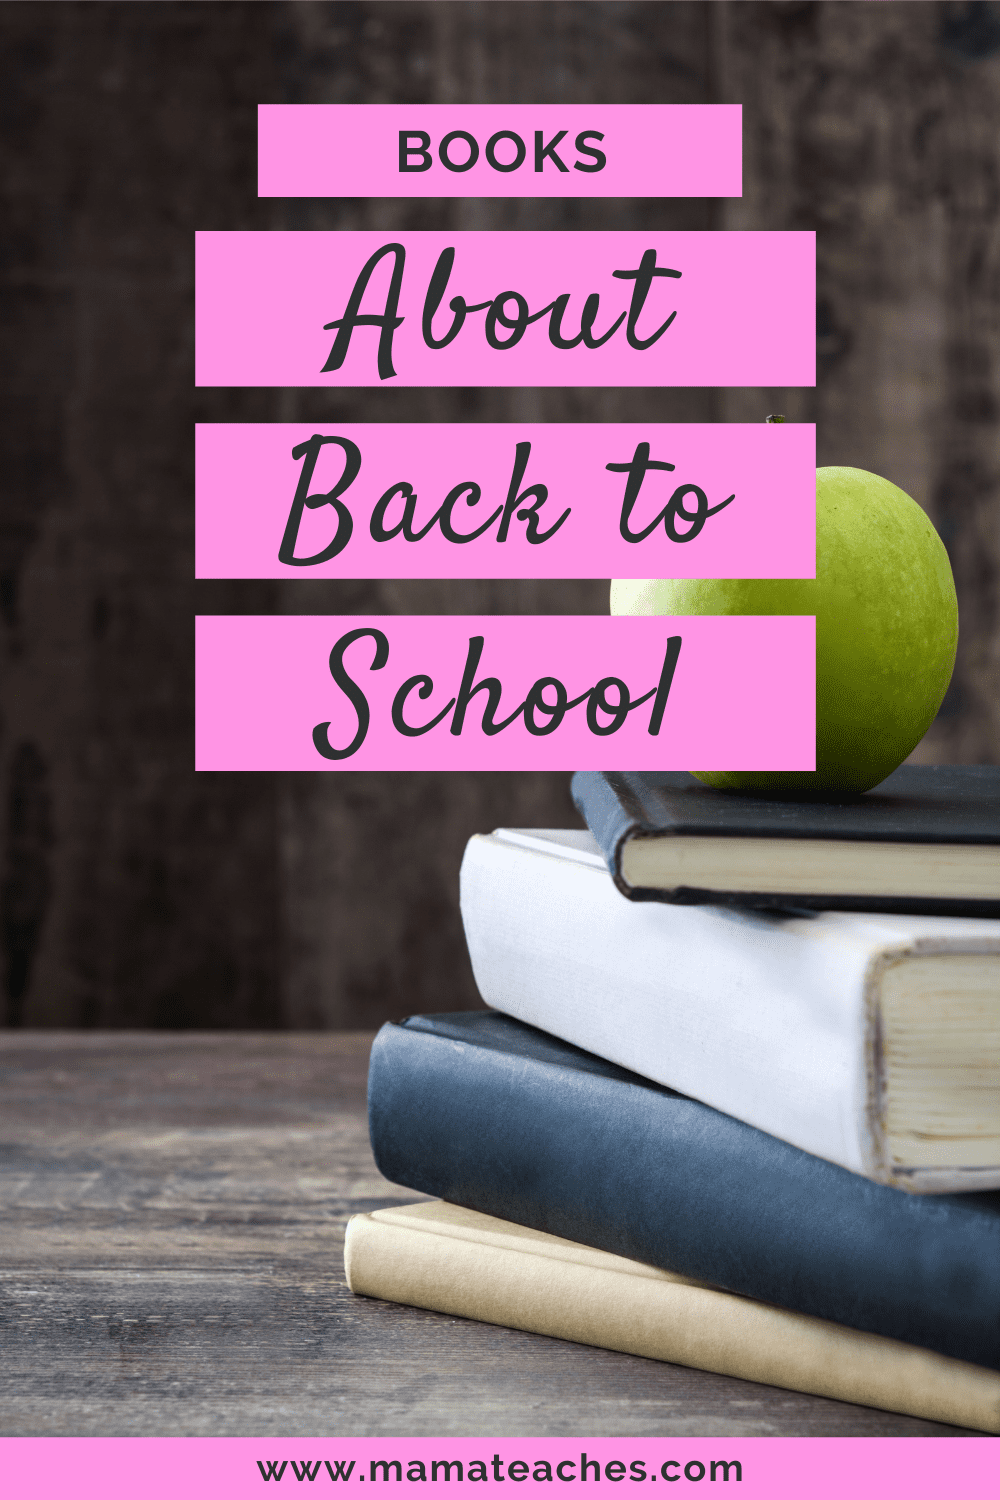 Books About Back to School